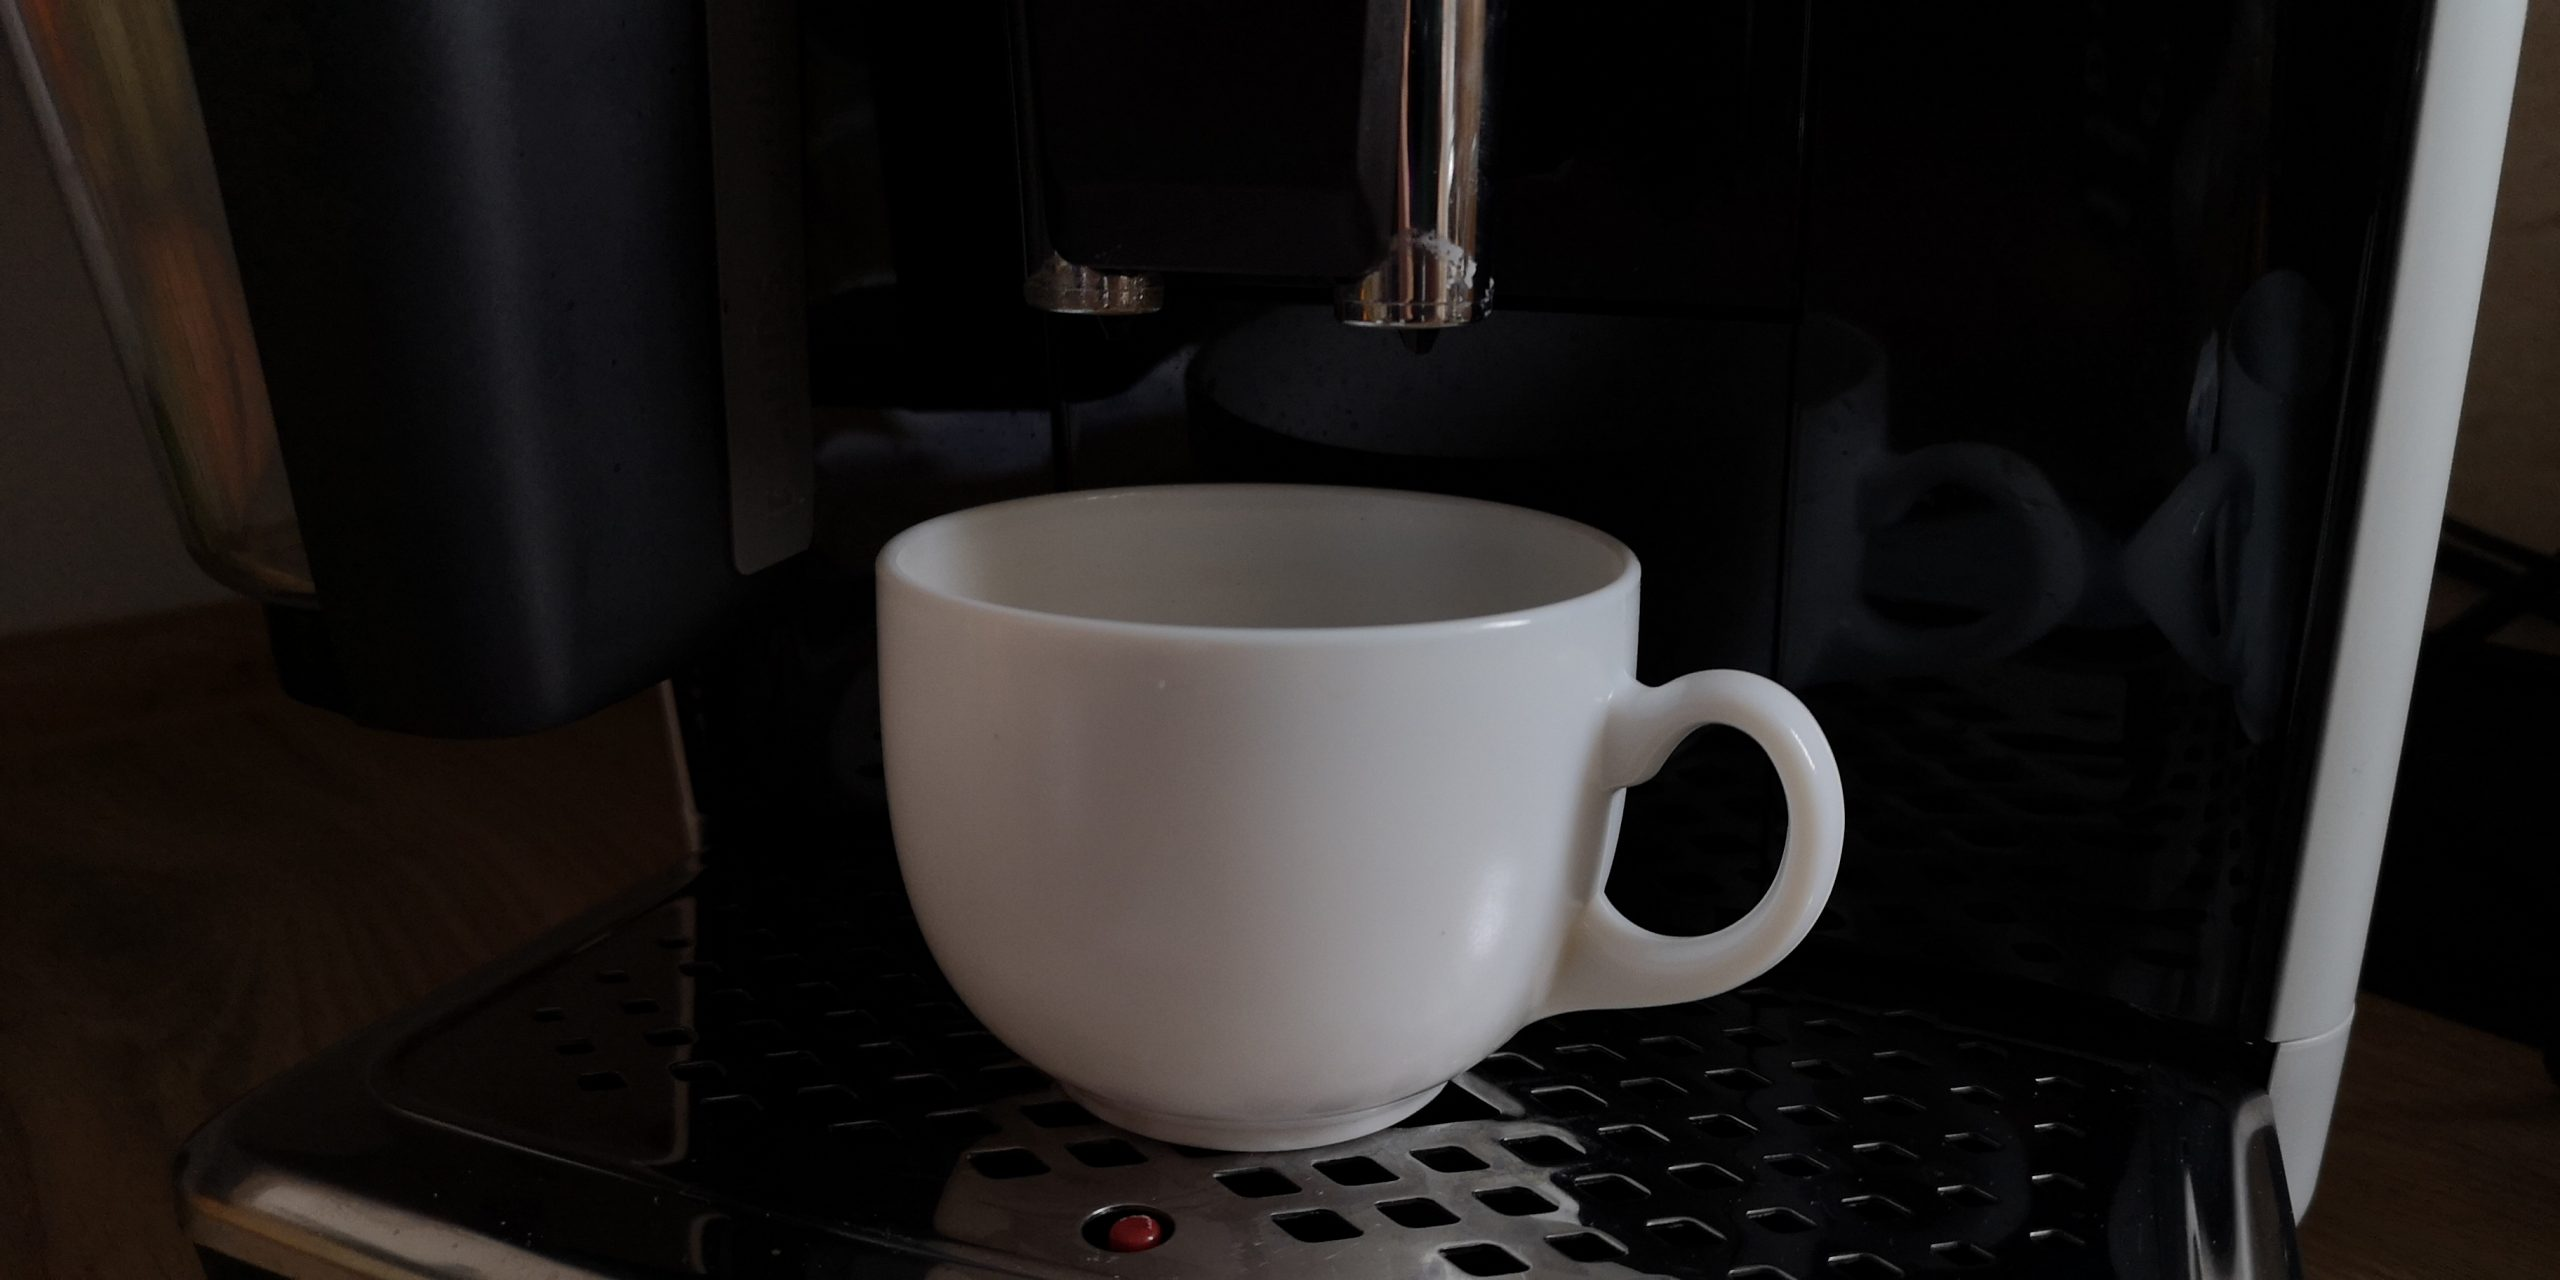 Are espresso machines better than traditional brewing methods?